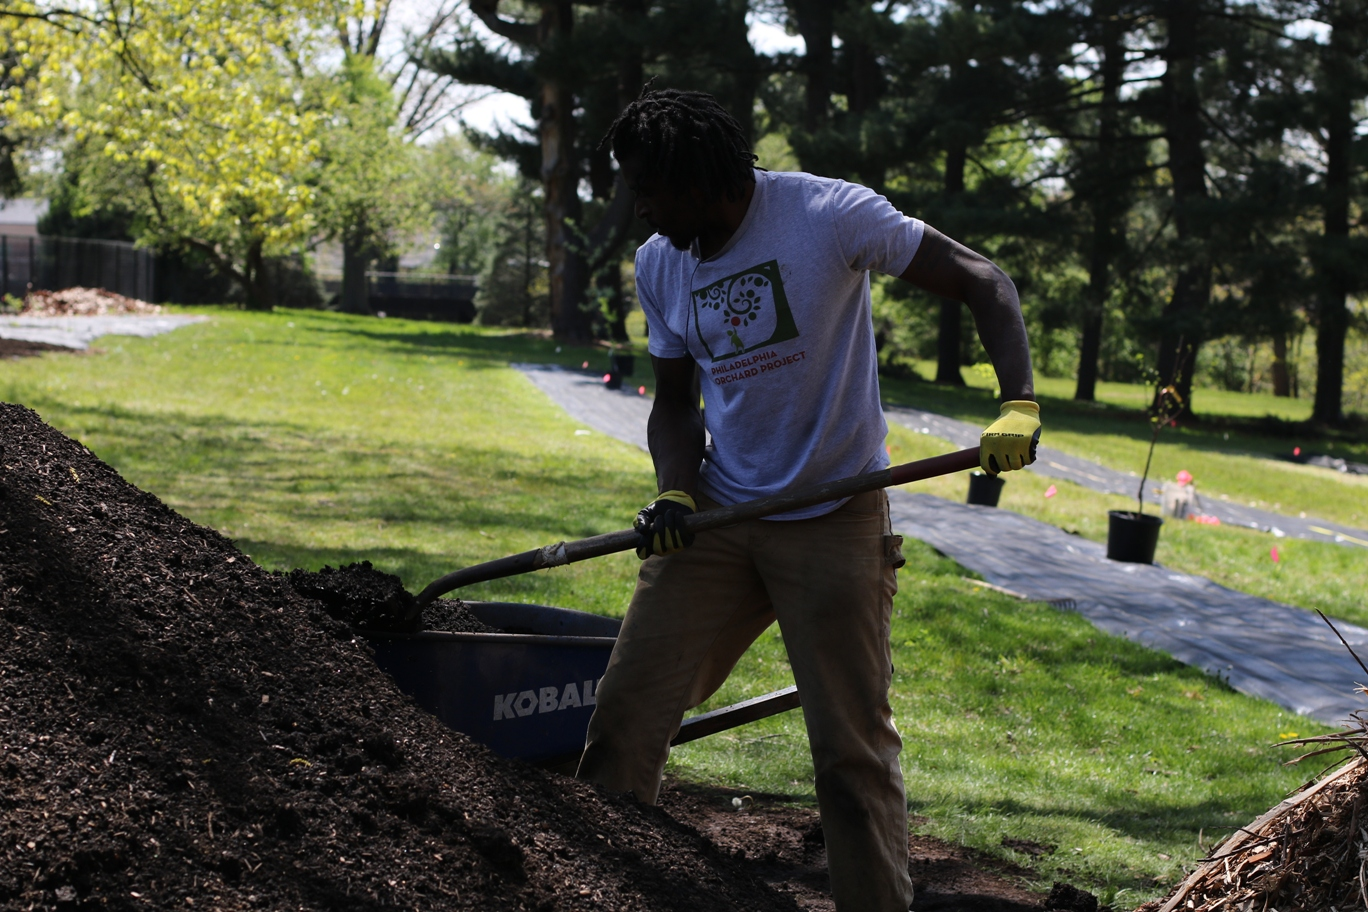 Orchard Director Alkebu-Lan Marcus shovels compost into a wheelbarrow.